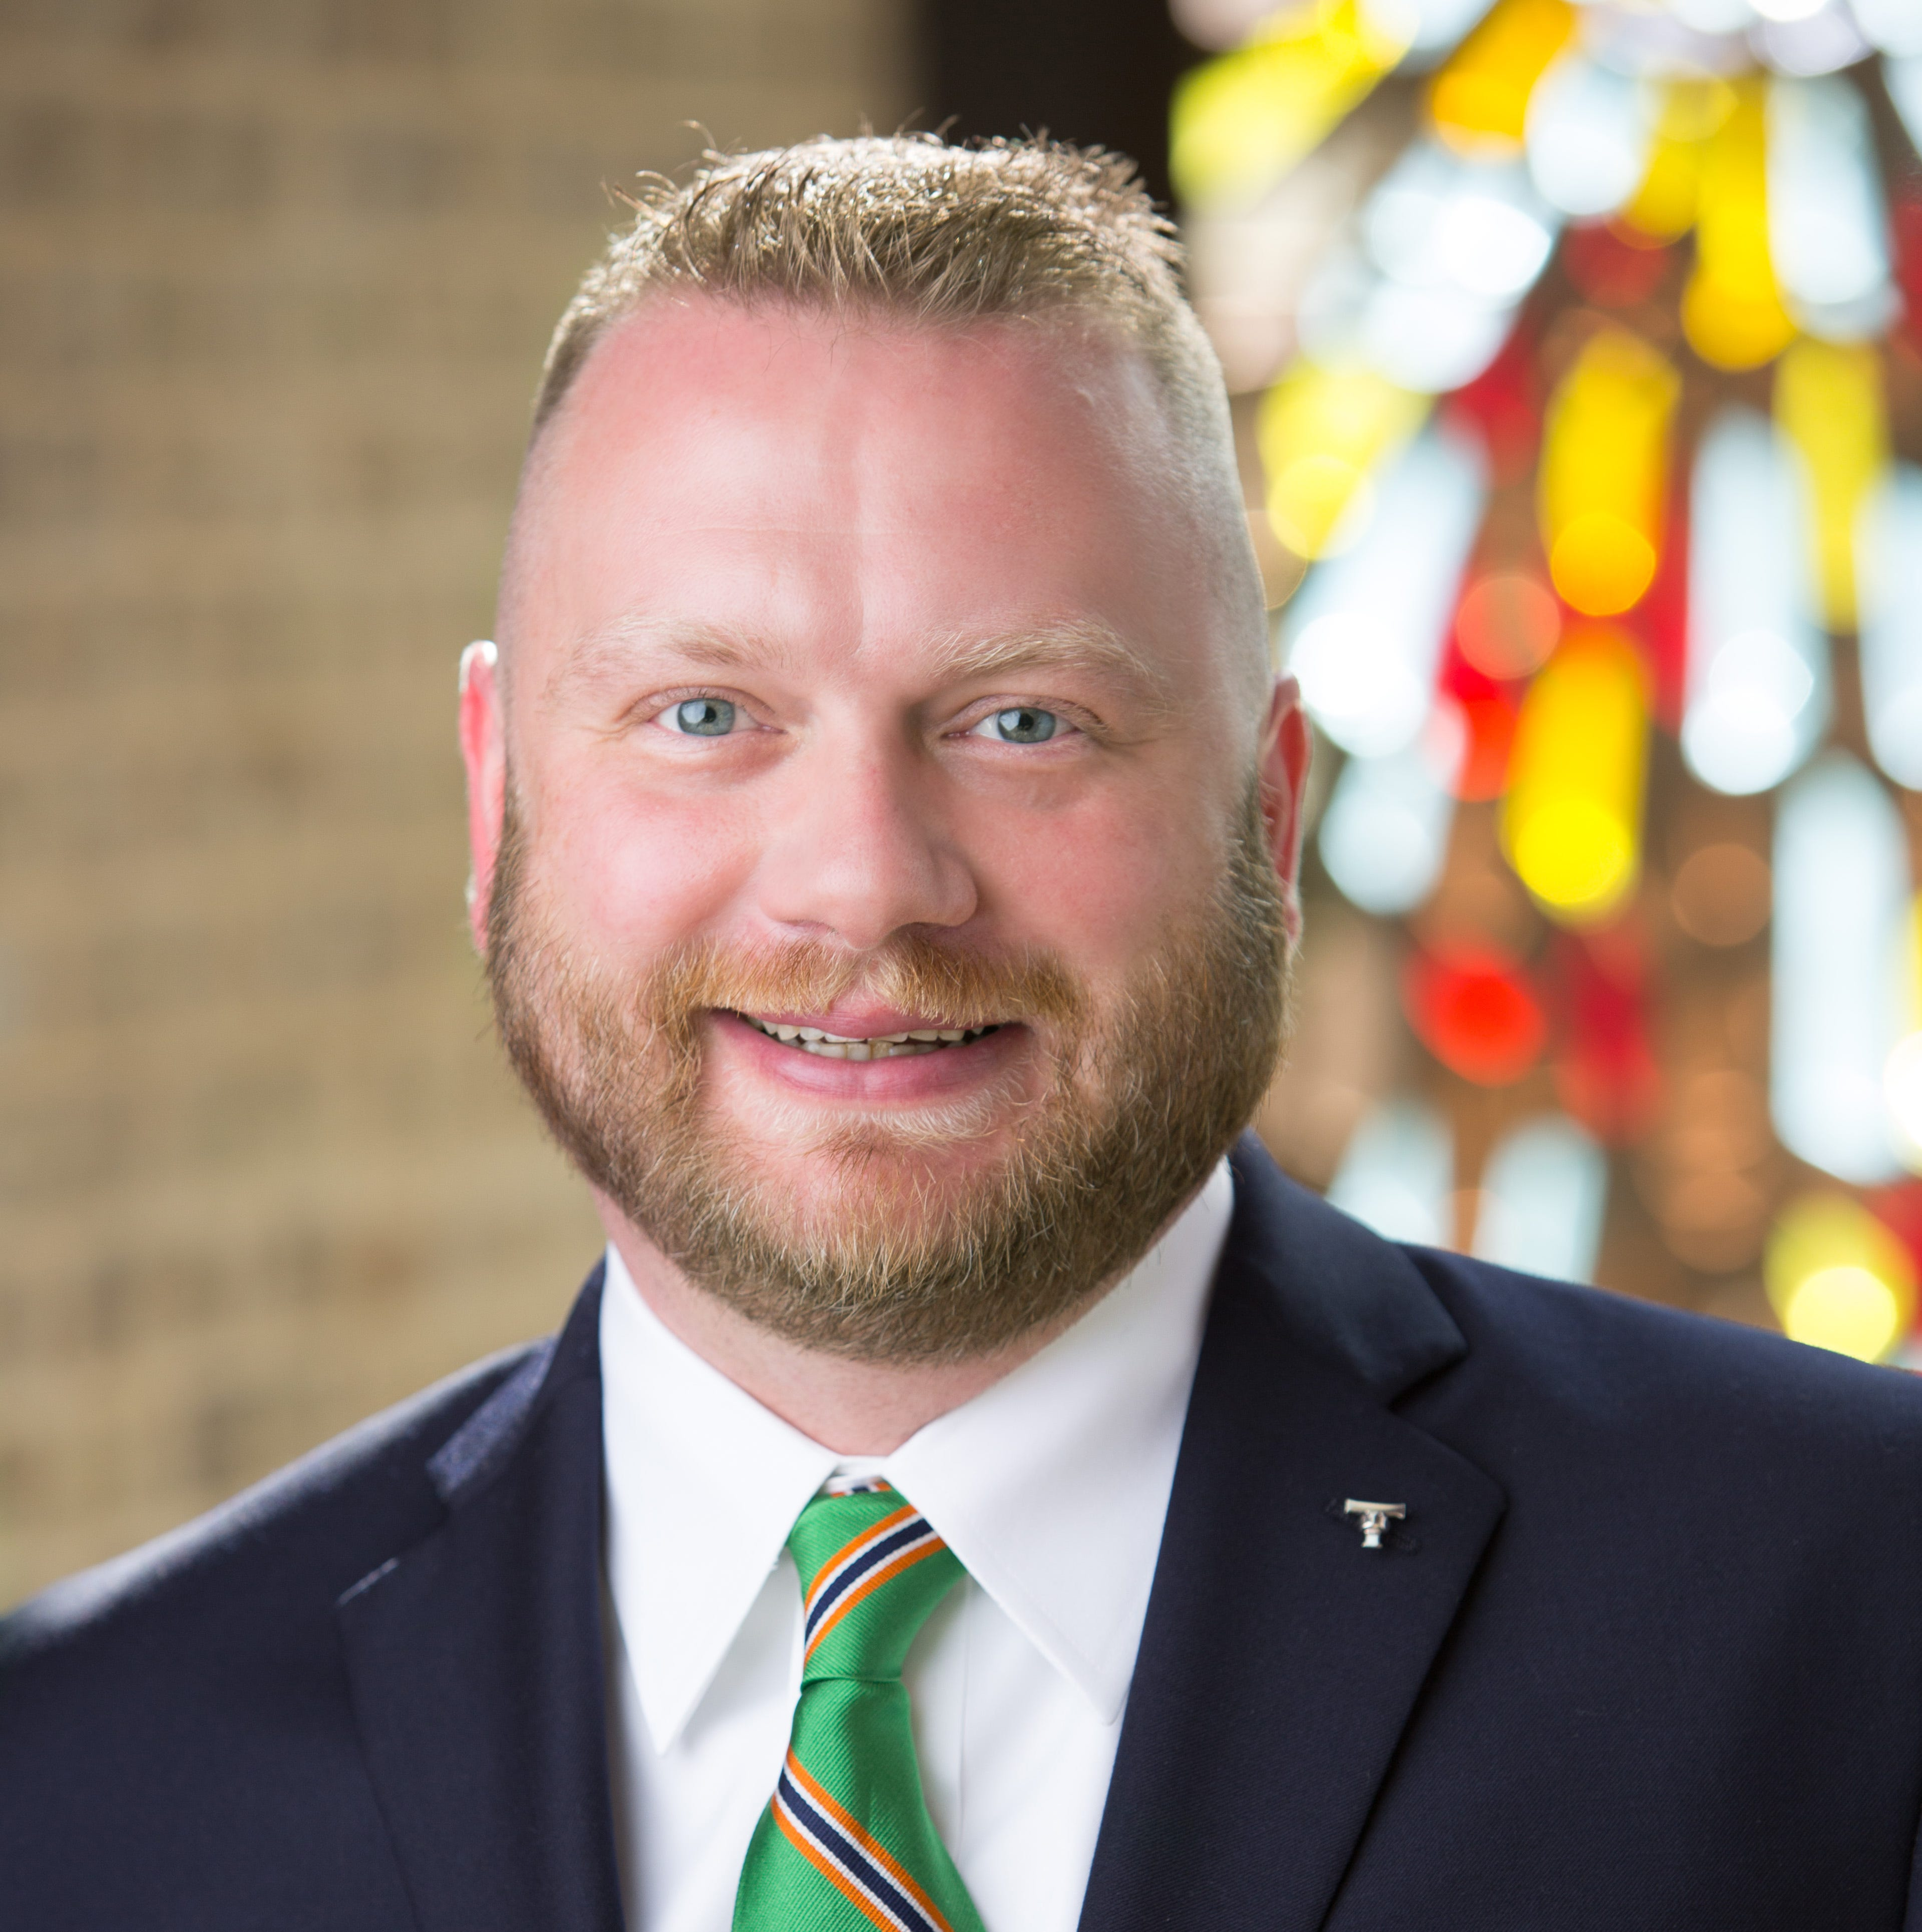 Rev. Topher Rodgers named clergy person in charge at Episcopal Church of Wichita Falls